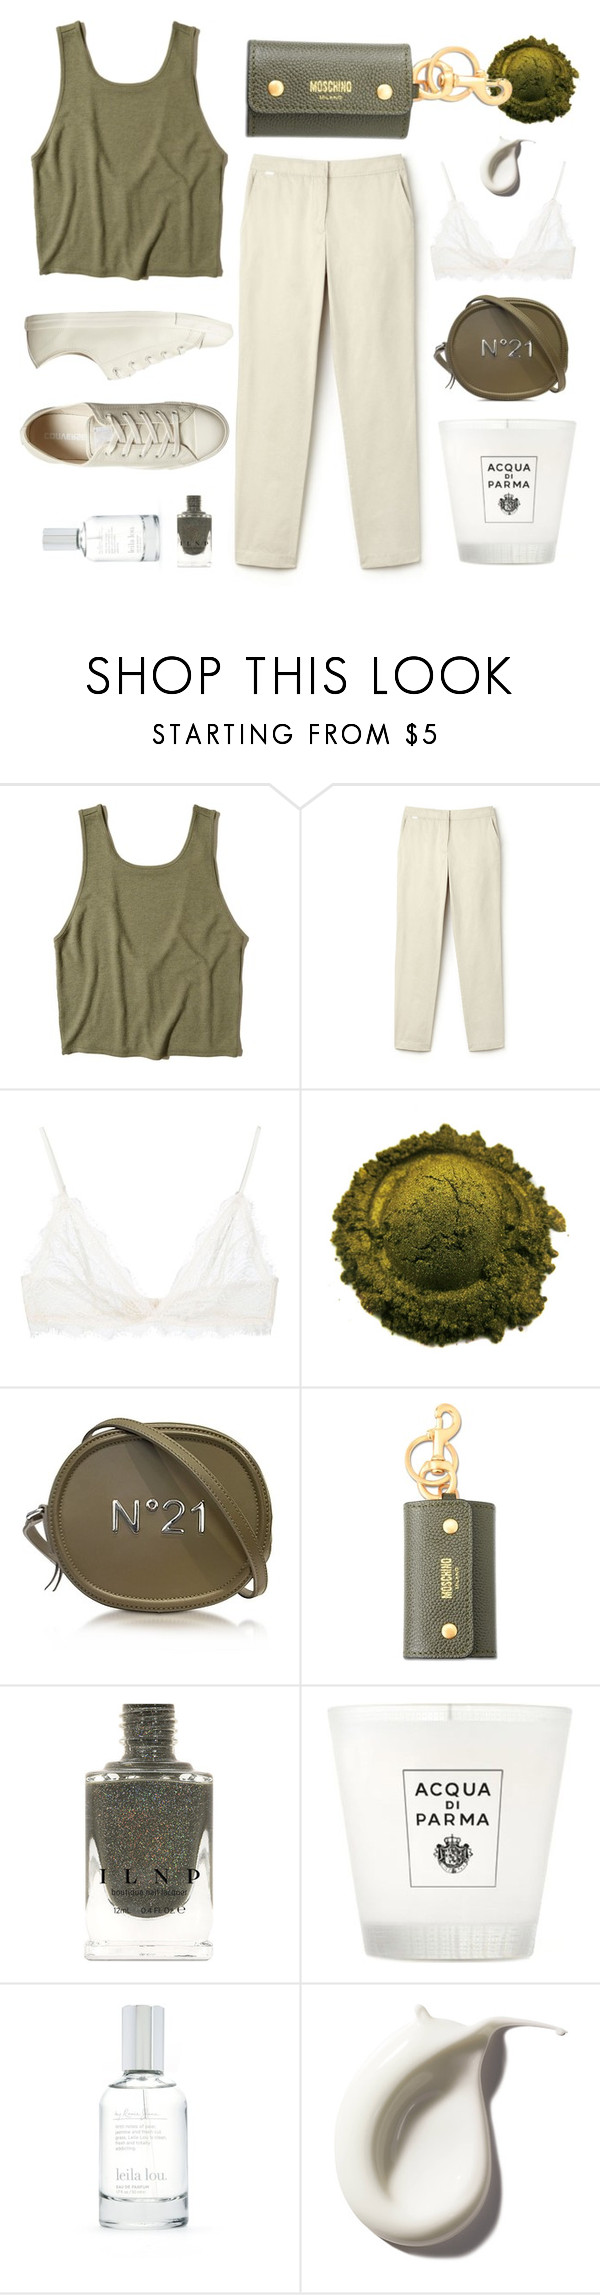 """""""o l i v e"""" by braincontortion ❤ liked on Polyvore featuring Hollister Co., Lacoste, Anine Bing, N°21, Moschino, Acqua di Parma, Splendid and Converse"""